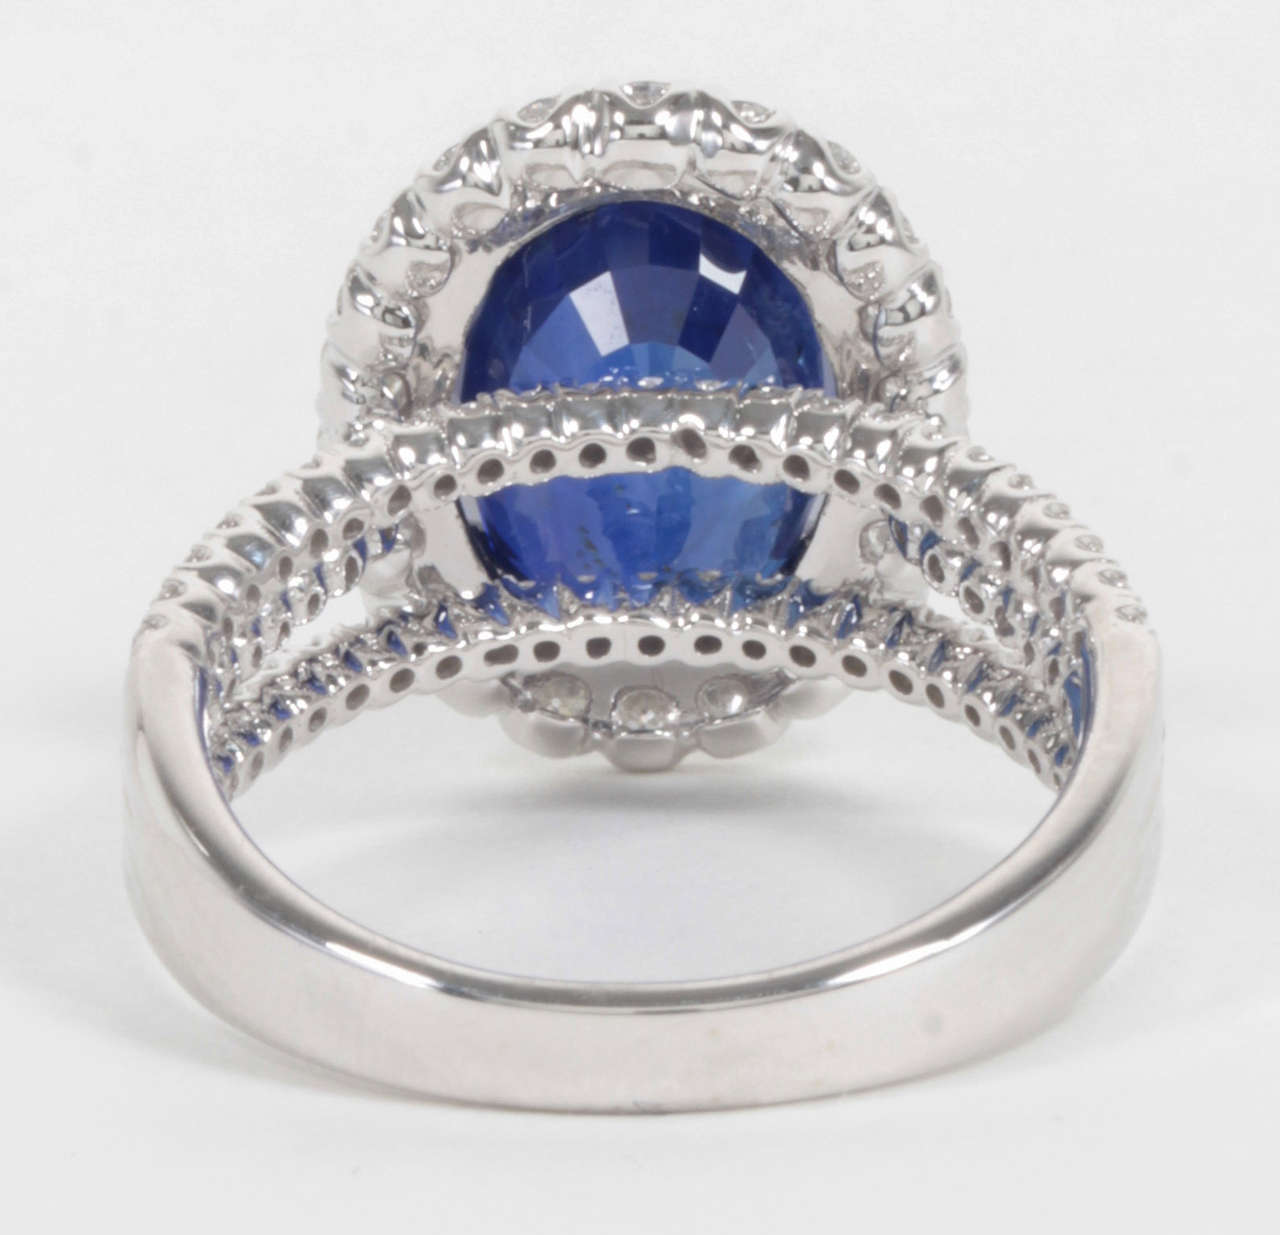 Certified Royal Blue Sapphire Diamond Ring For Sale At 1stdibs